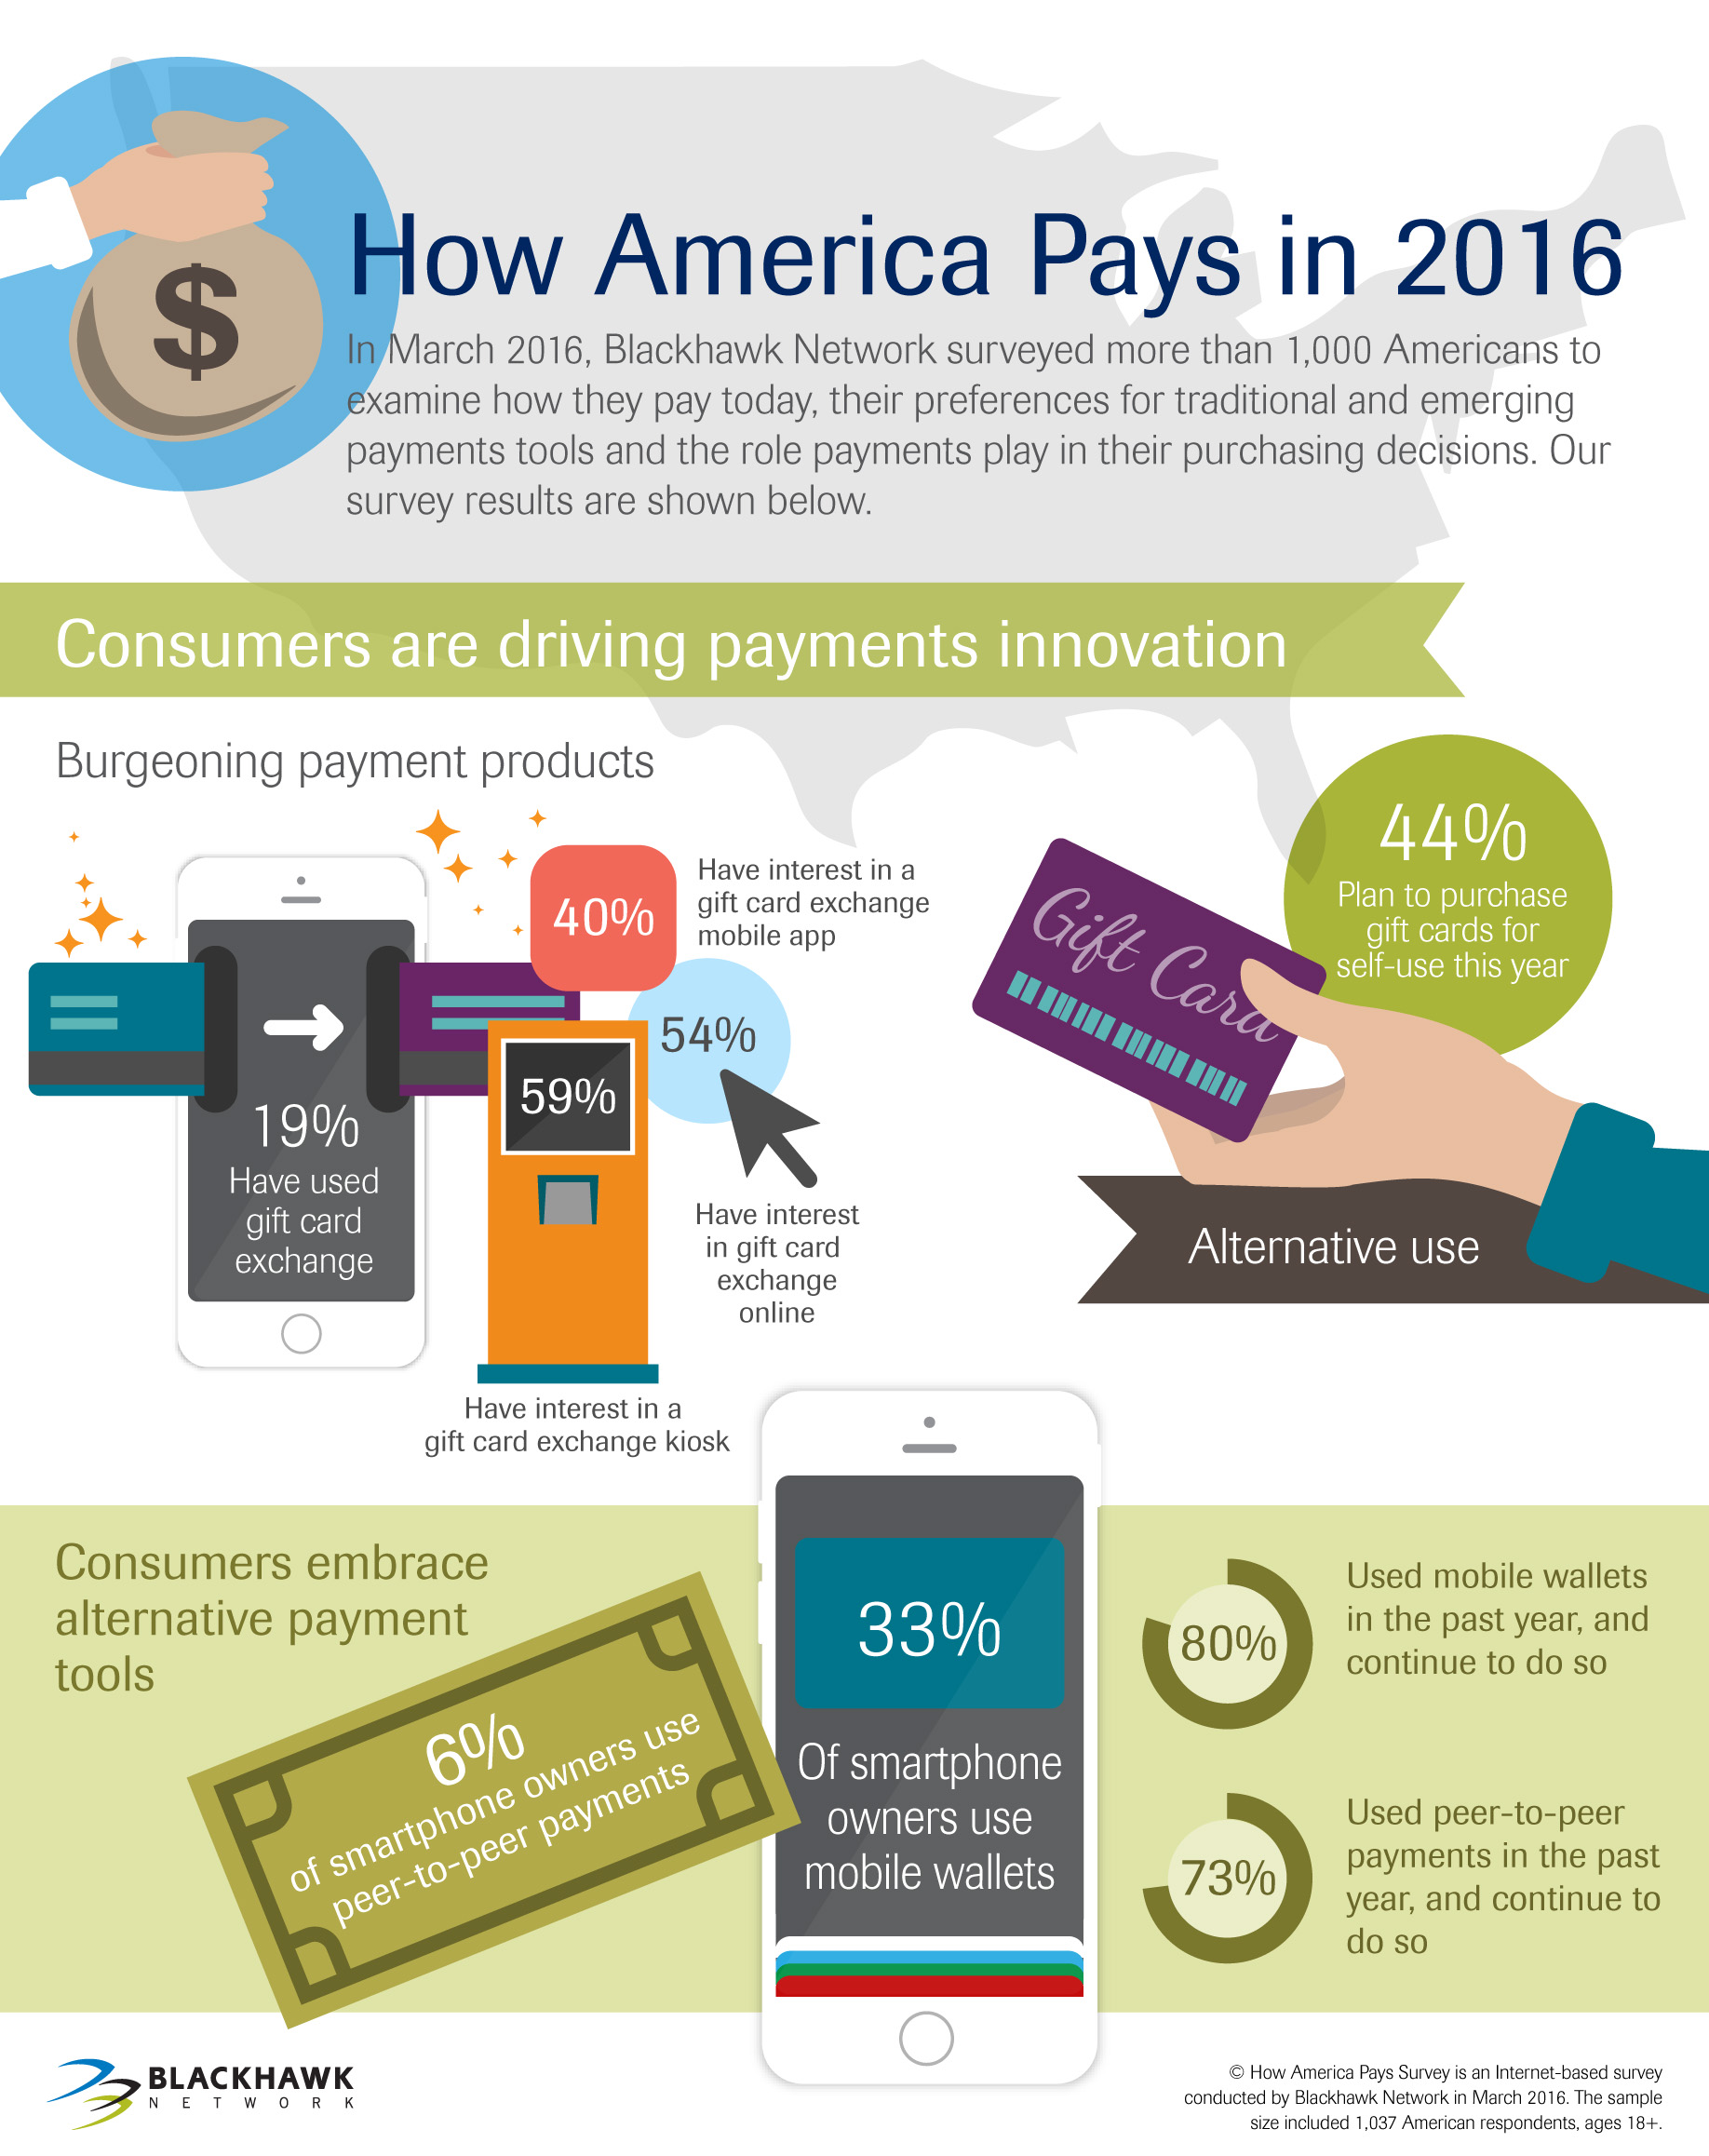 Consumers are driving payments innovation